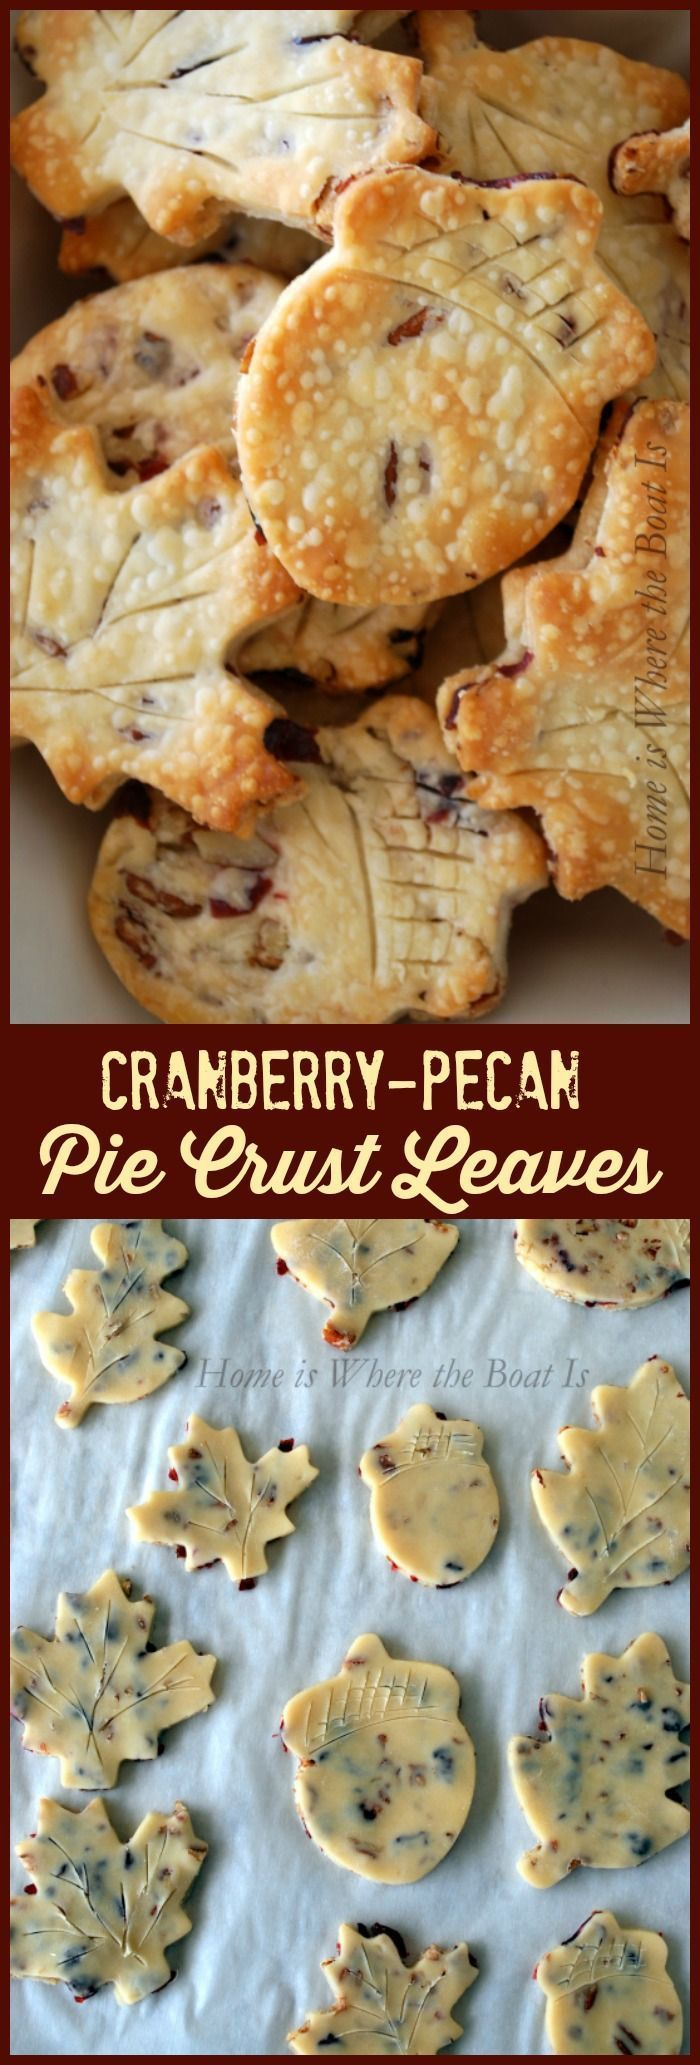 """Cranberry-Pecan Pie Crust Leaves Dress up your left over Thanksgiving turkey with Cranberry-Pecan Crusts for pot pie, piecrust leaf """"sandwiches"""" of pecans and cranberries! Fun Recipe!"""